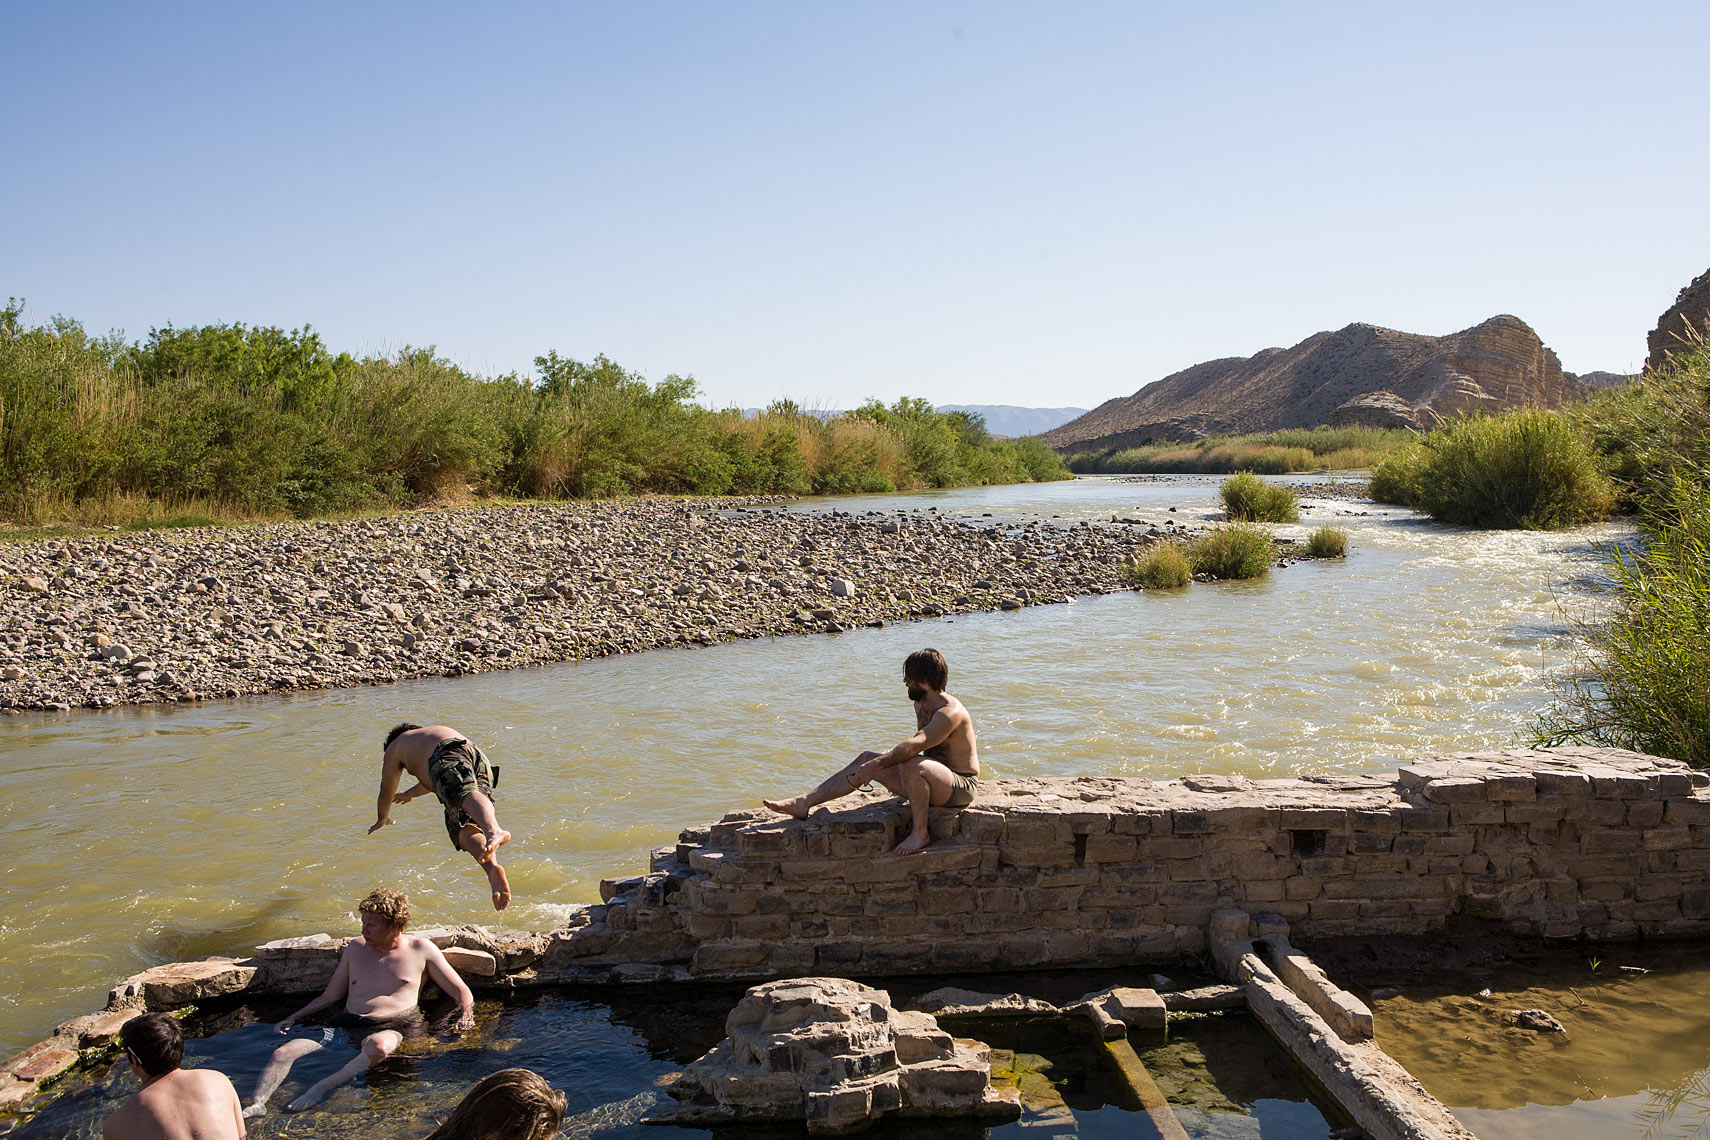 Hot Springs - Rio Grande River - Big Bend